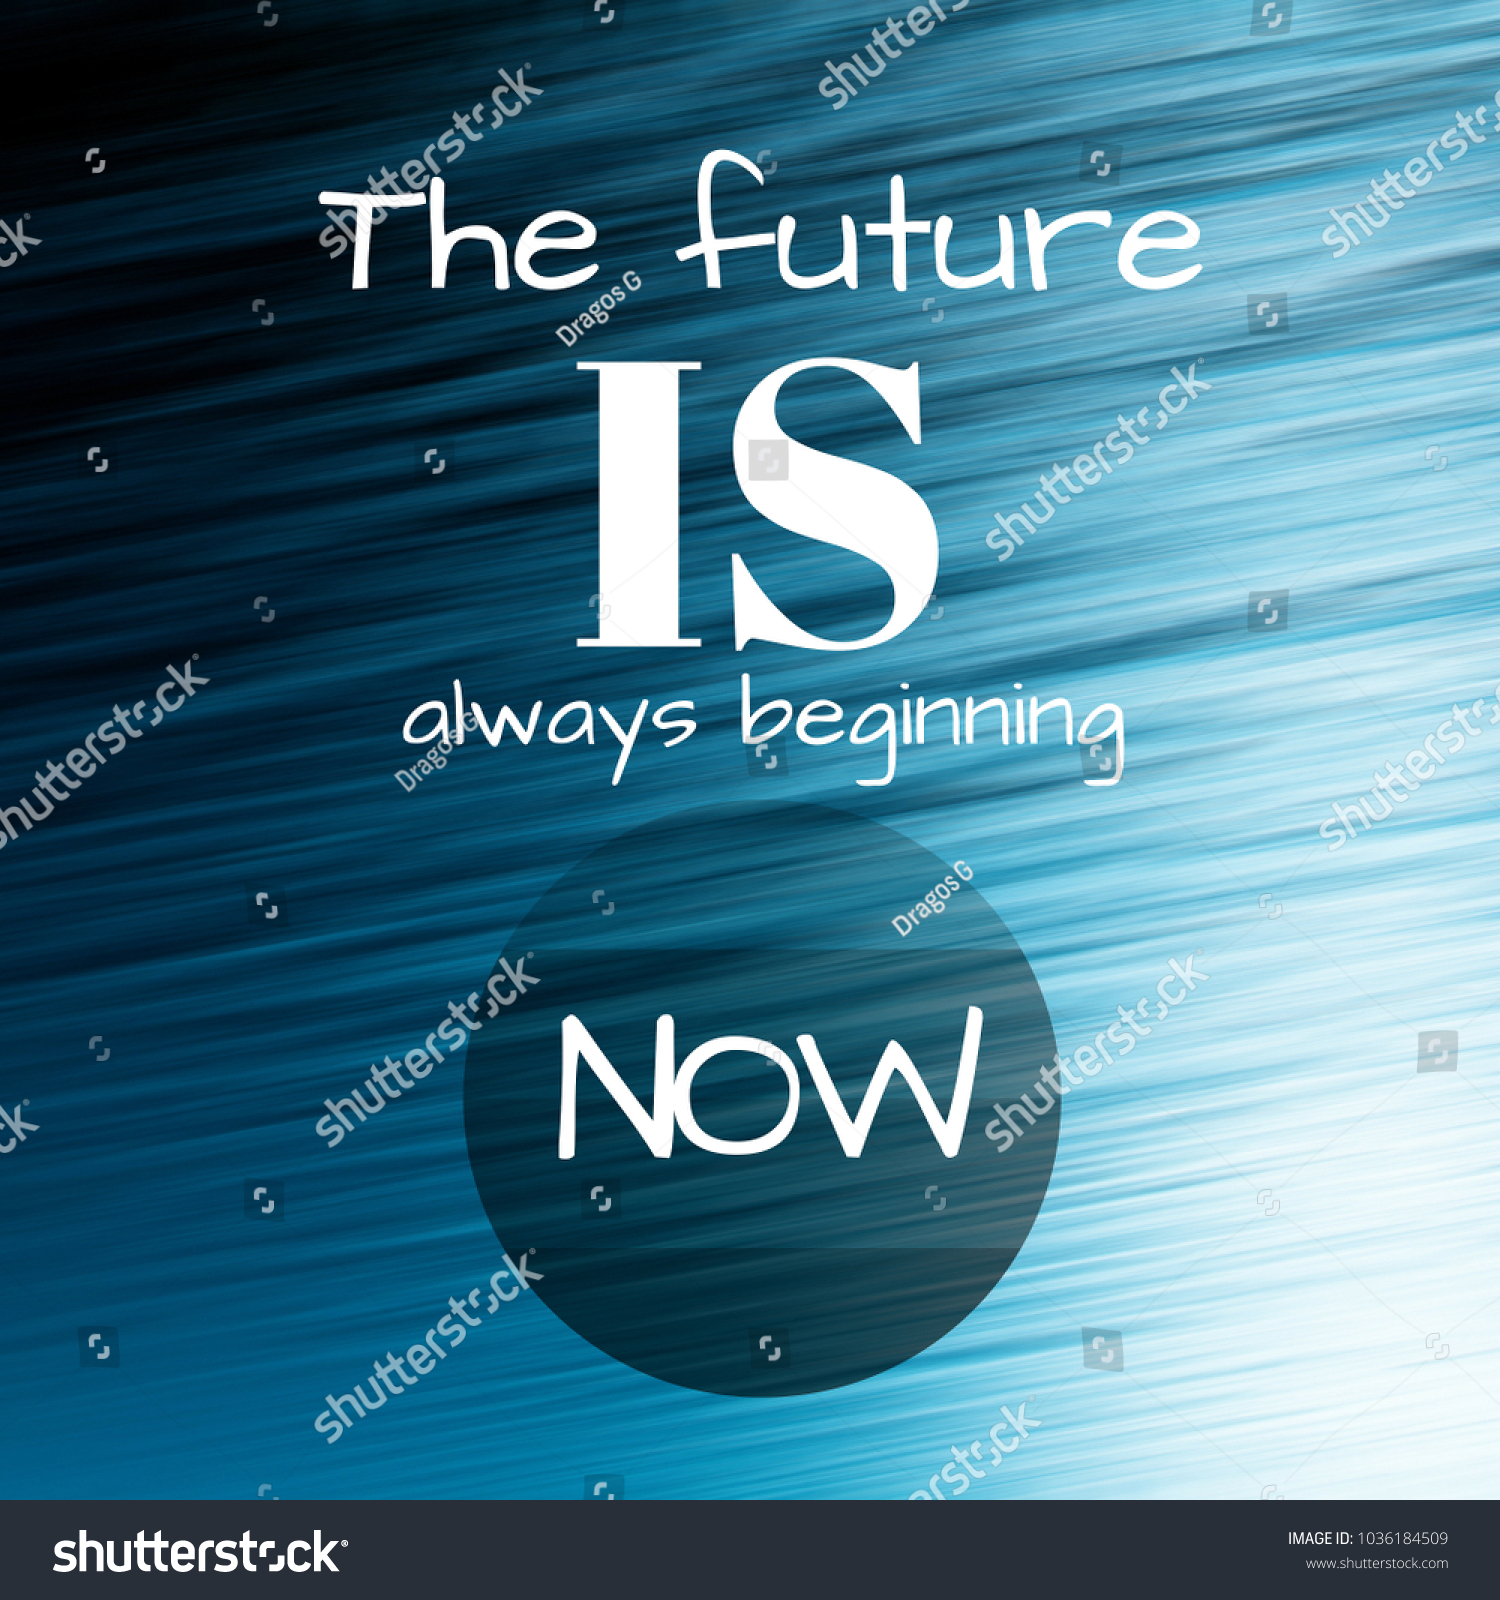 Perfect Future Always Beginning Now Inspirational Quote Stock Illustration  1036184509   Shutterstock